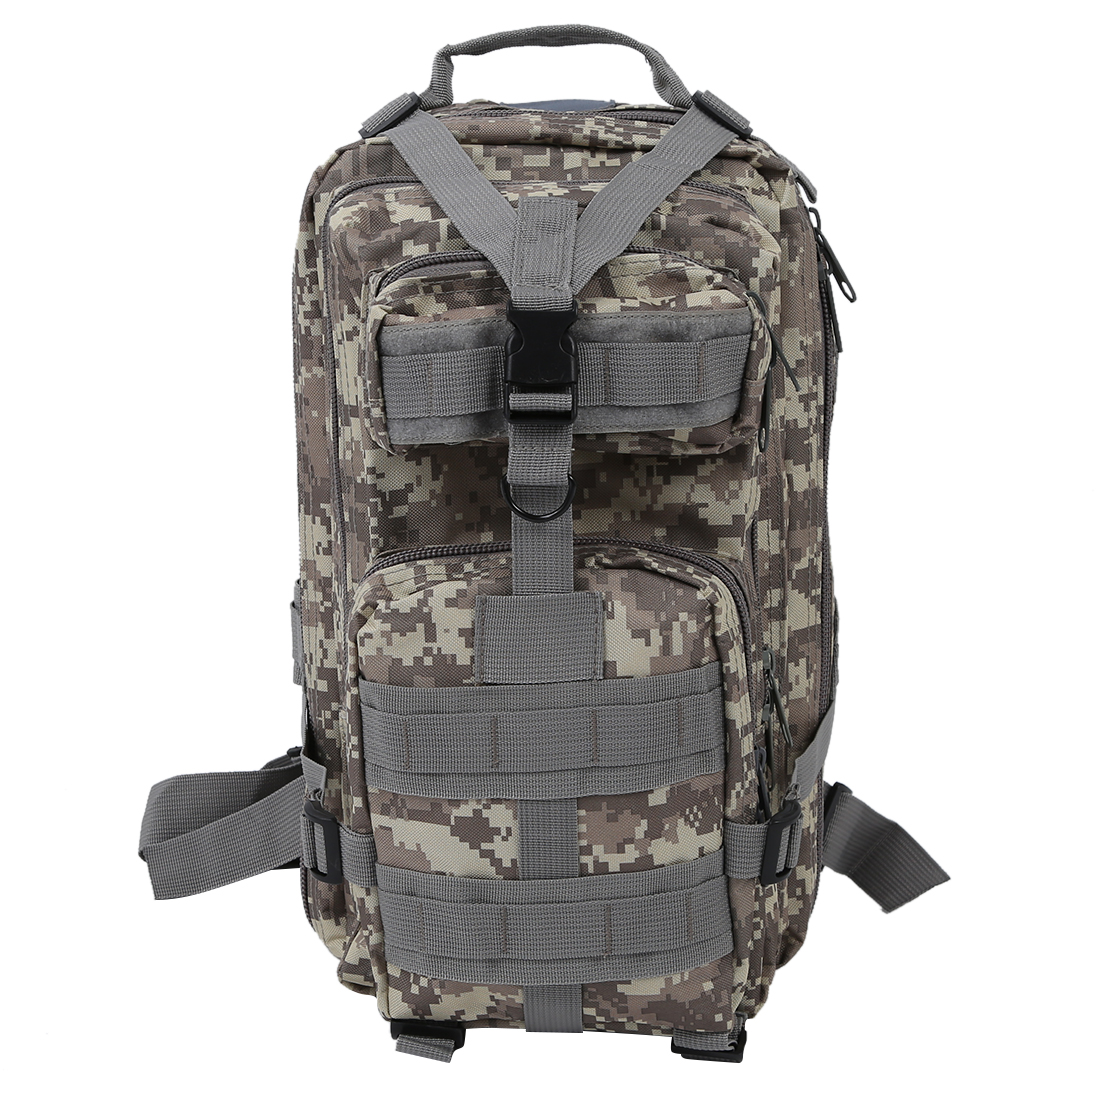 8 Pcs of (VSEN Hot 30L Military Army Rucksacks Molle Backpack Trekking Bag ACU Camouflage) vsen hot styleluggage bag replacement plastic 1 side rectangle buckle 10 pcs